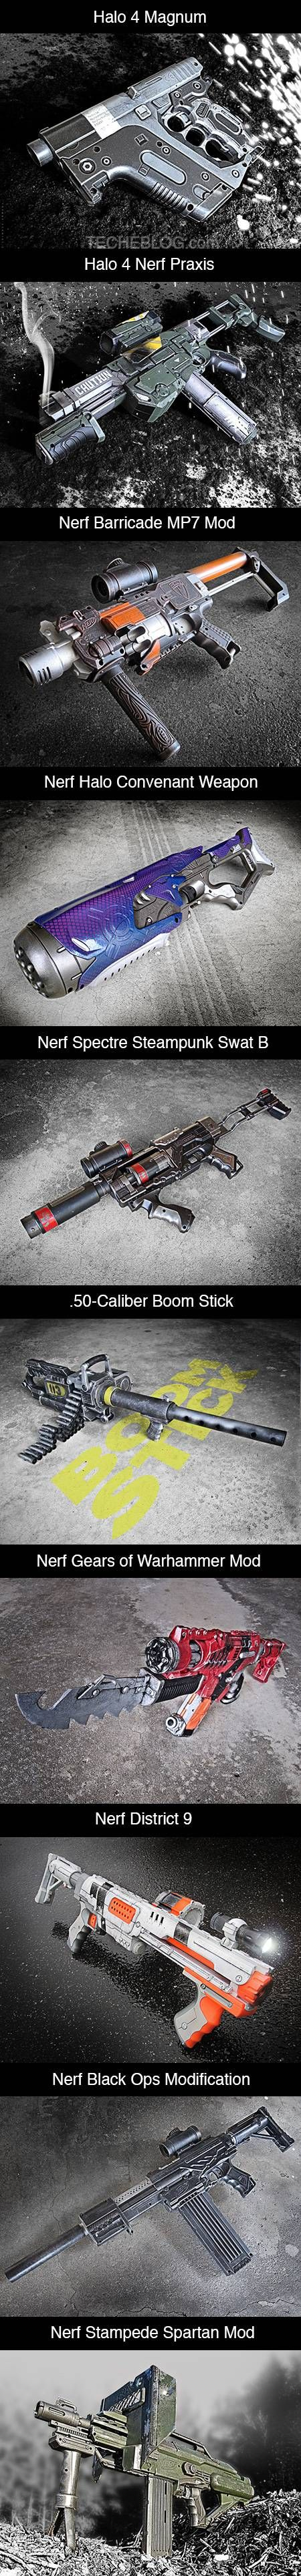 Ten of the coolest custom Nerf guns ever.